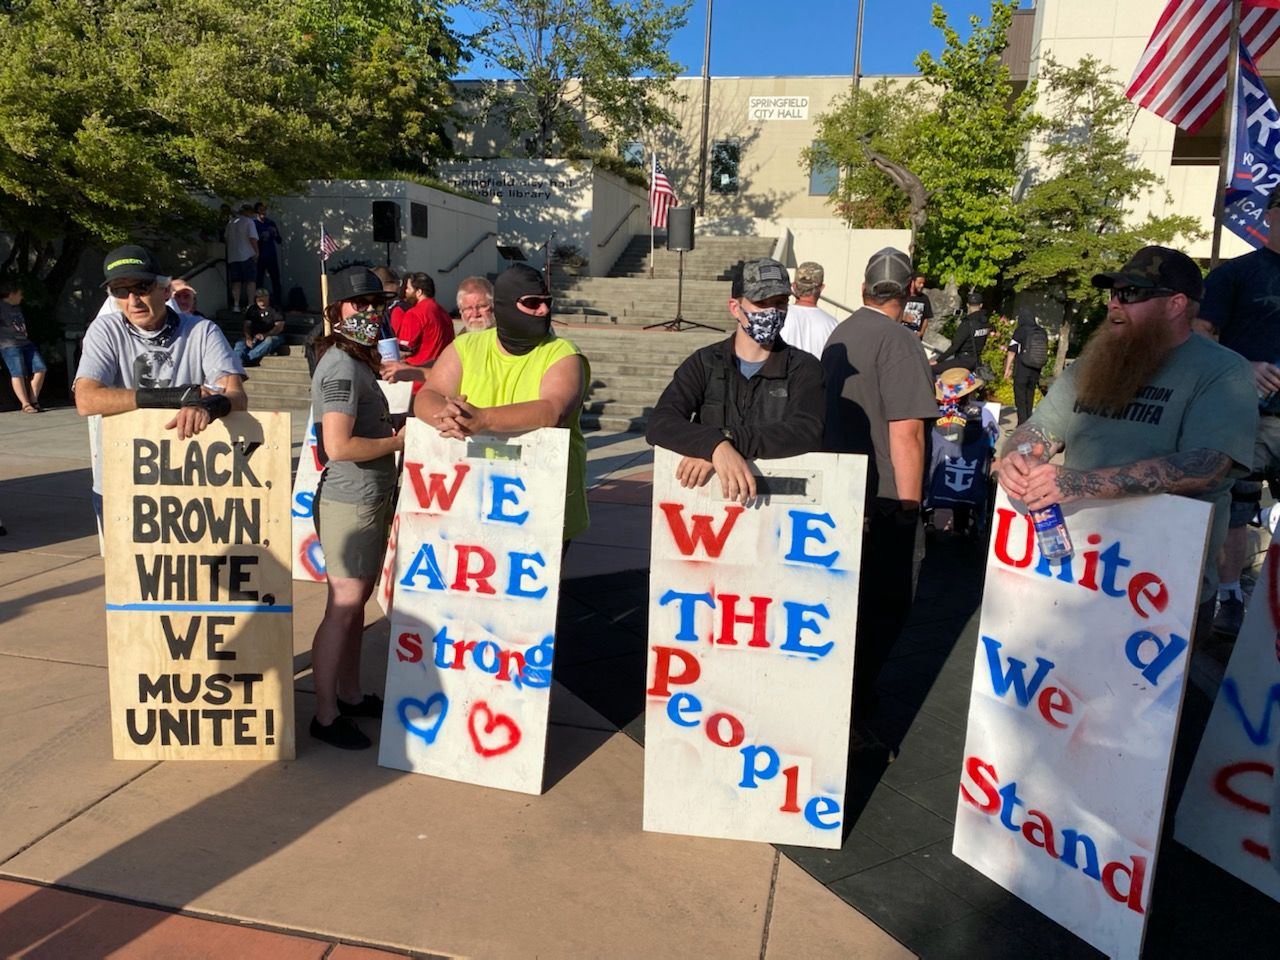 Counter-protesters show up to 'All Live Matter' rally in Springfield (Photo by Dan Morrison)